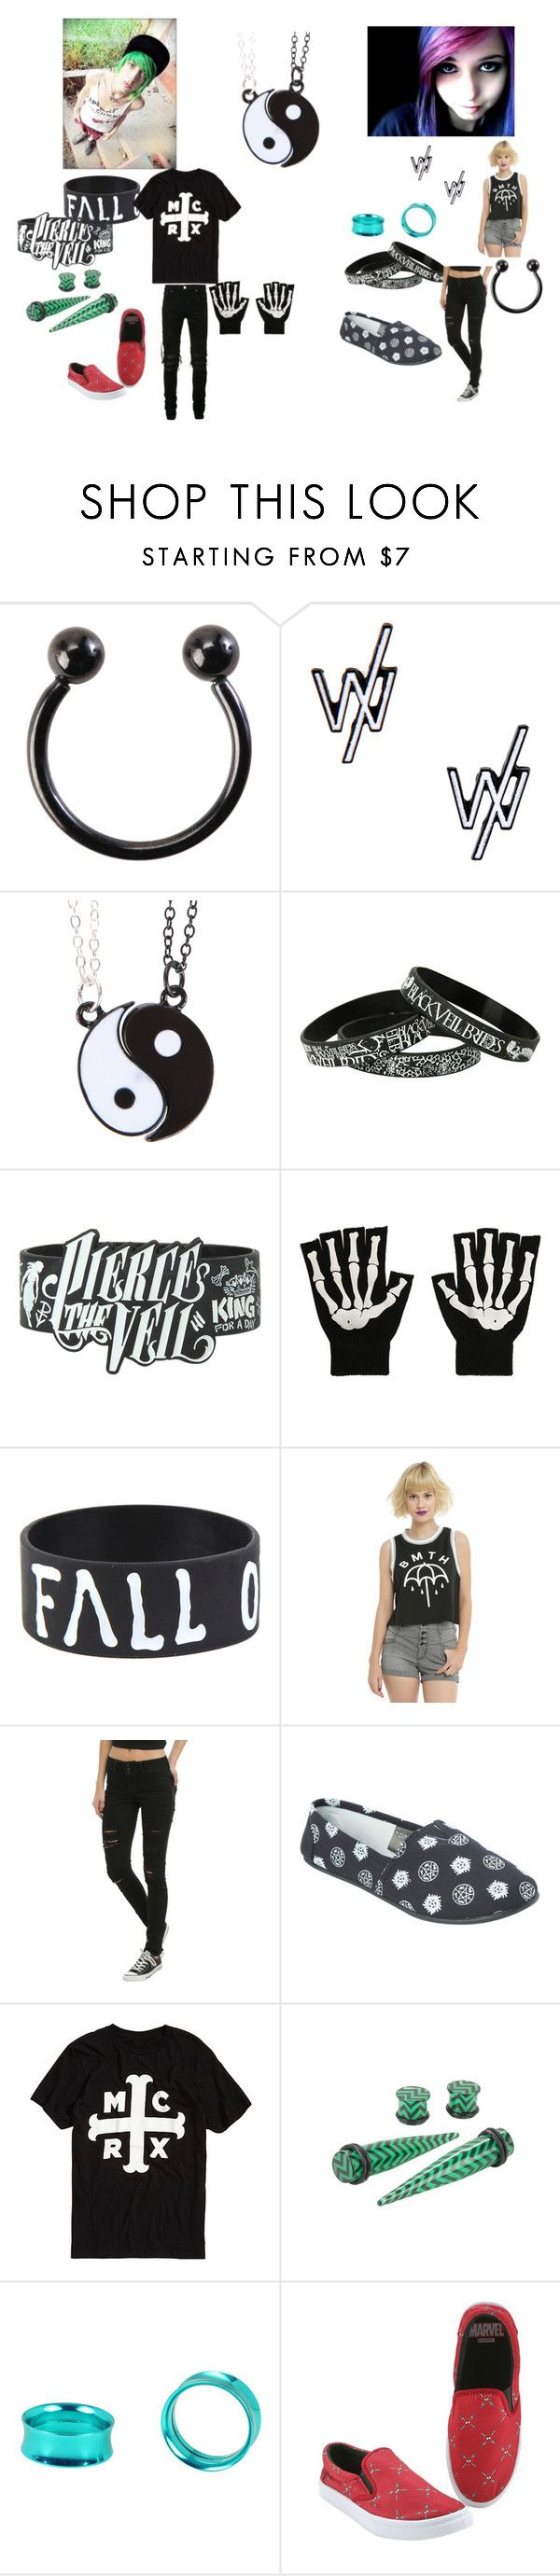 """""""Together Forever Emo Scene Couple"""" by alexemoforever ❤ liked on Polyvore featuring AMIRI and plus size clothing"""